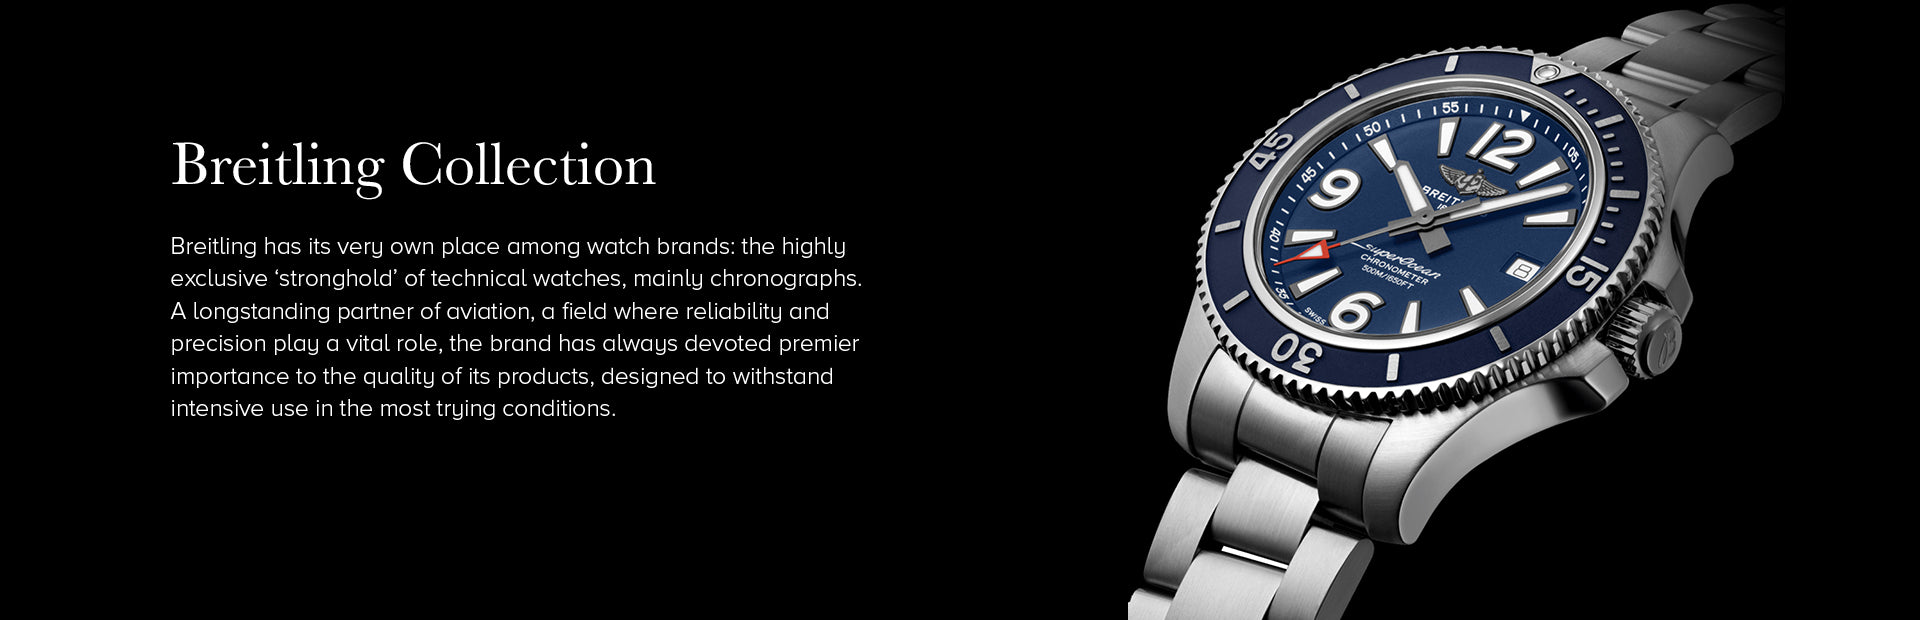 Test Watchbrand